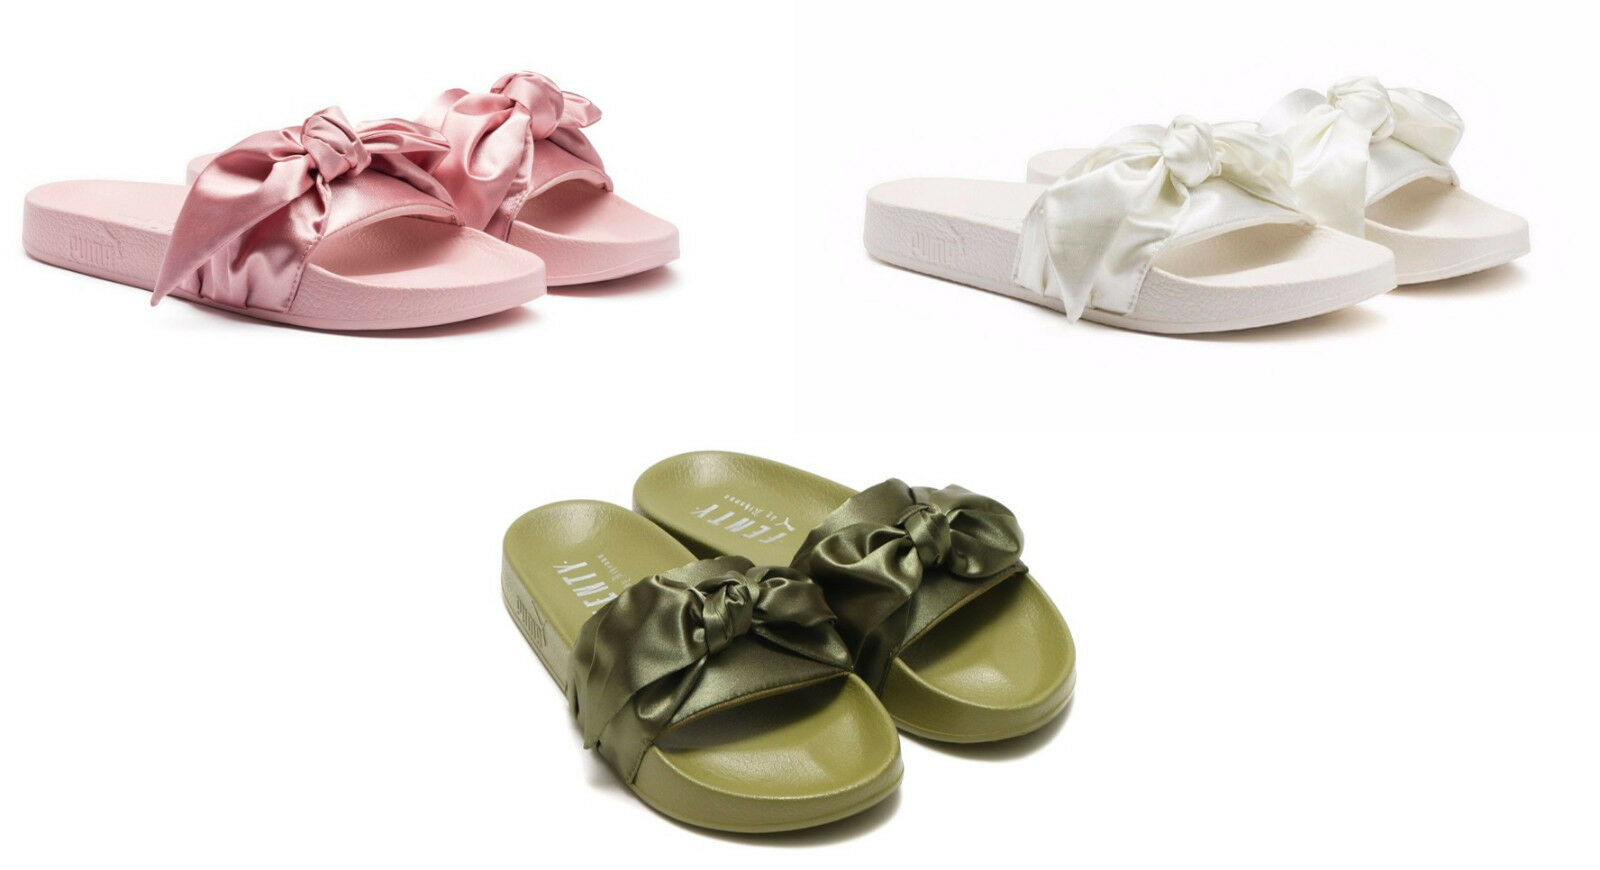 Puma Rihanna Fenty Bow Slides Olive Green Pink Silver White Slippers